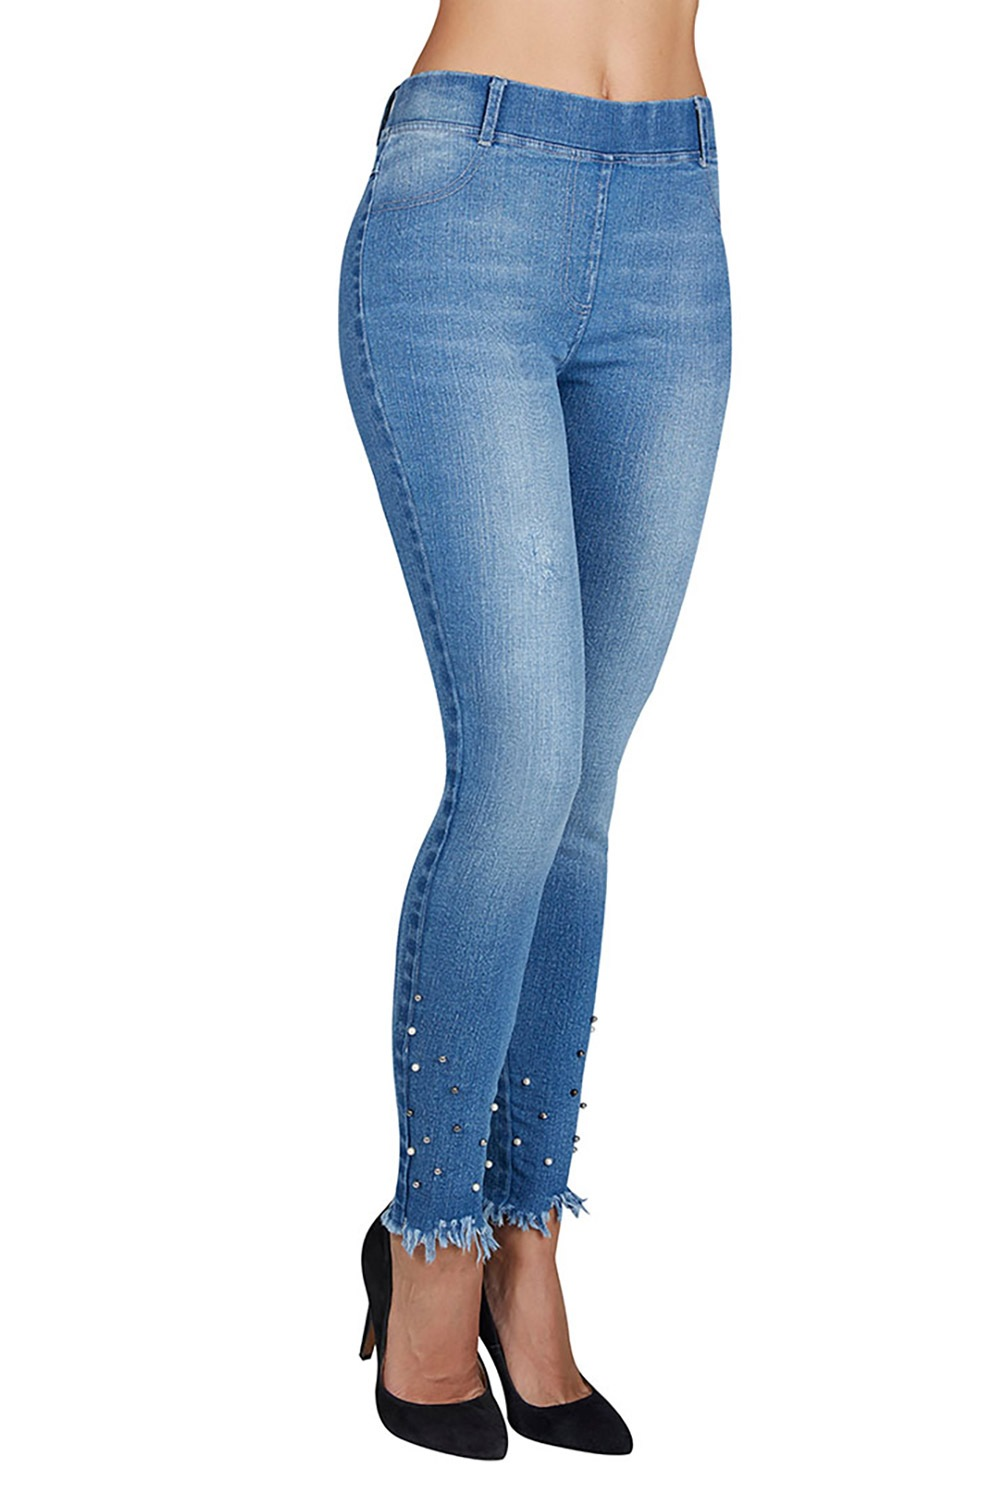 Colant tip jeans Reyna cu efect Push-Up